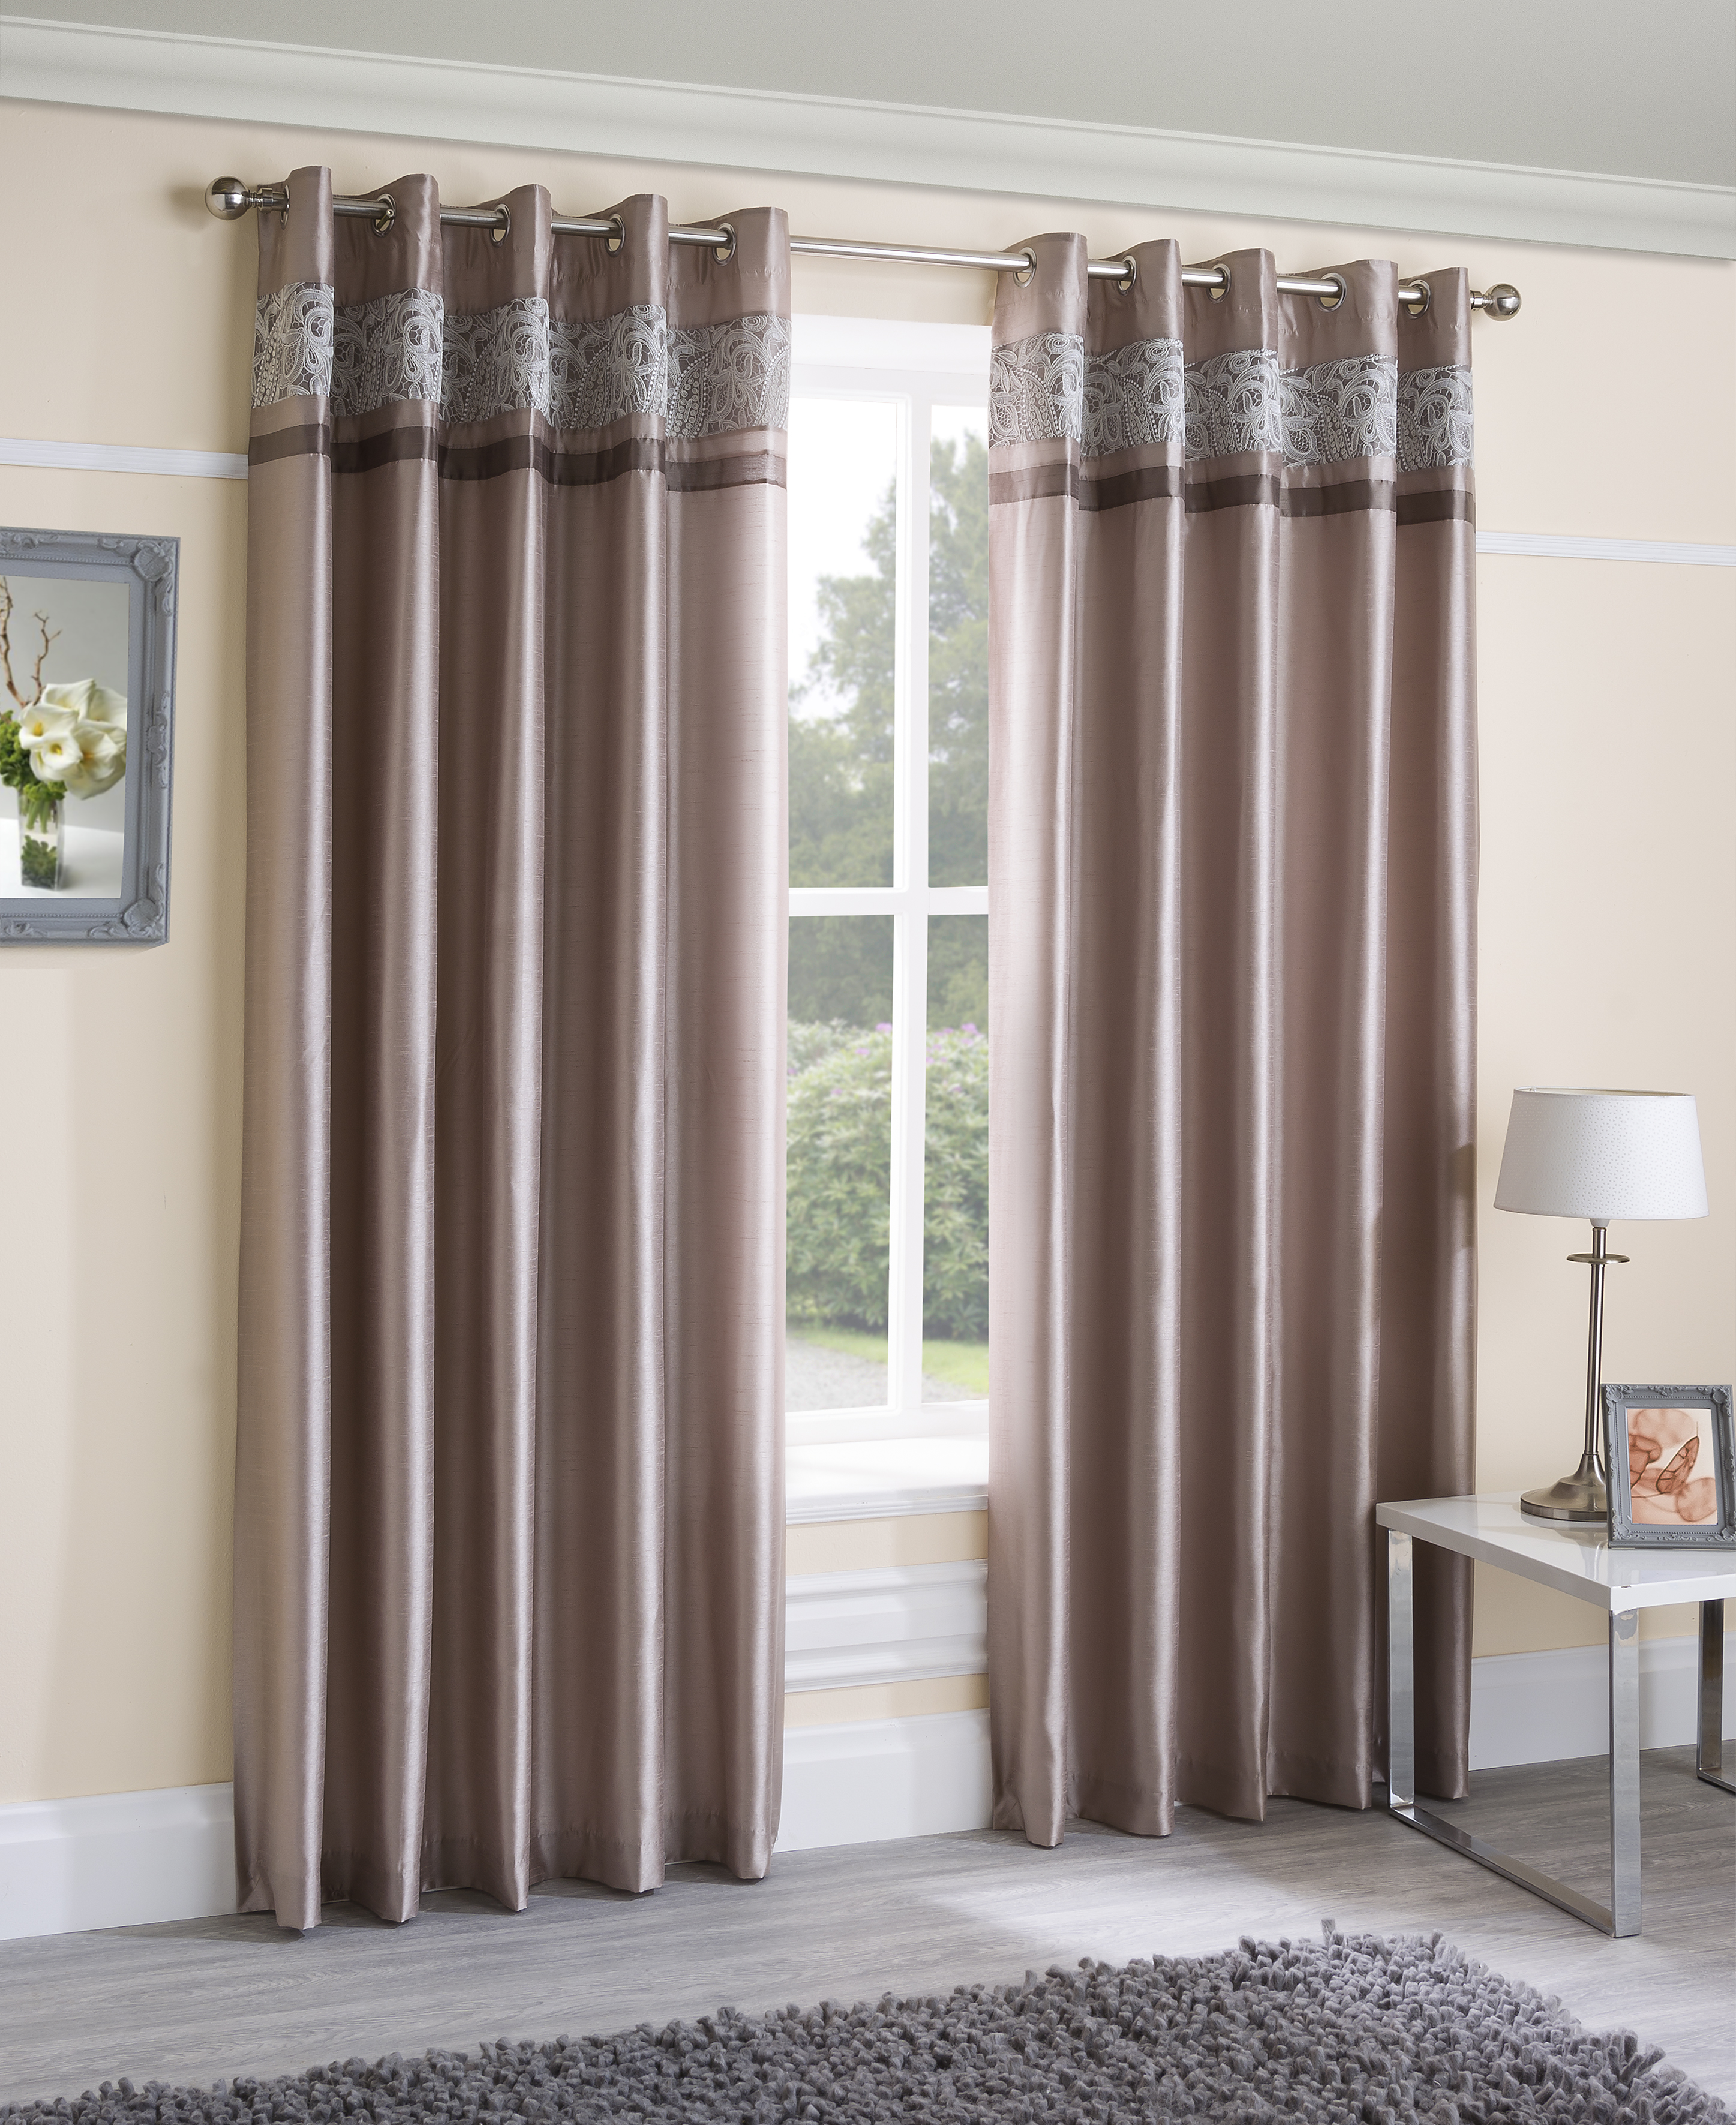 Fresh Curtains for Wide Windows